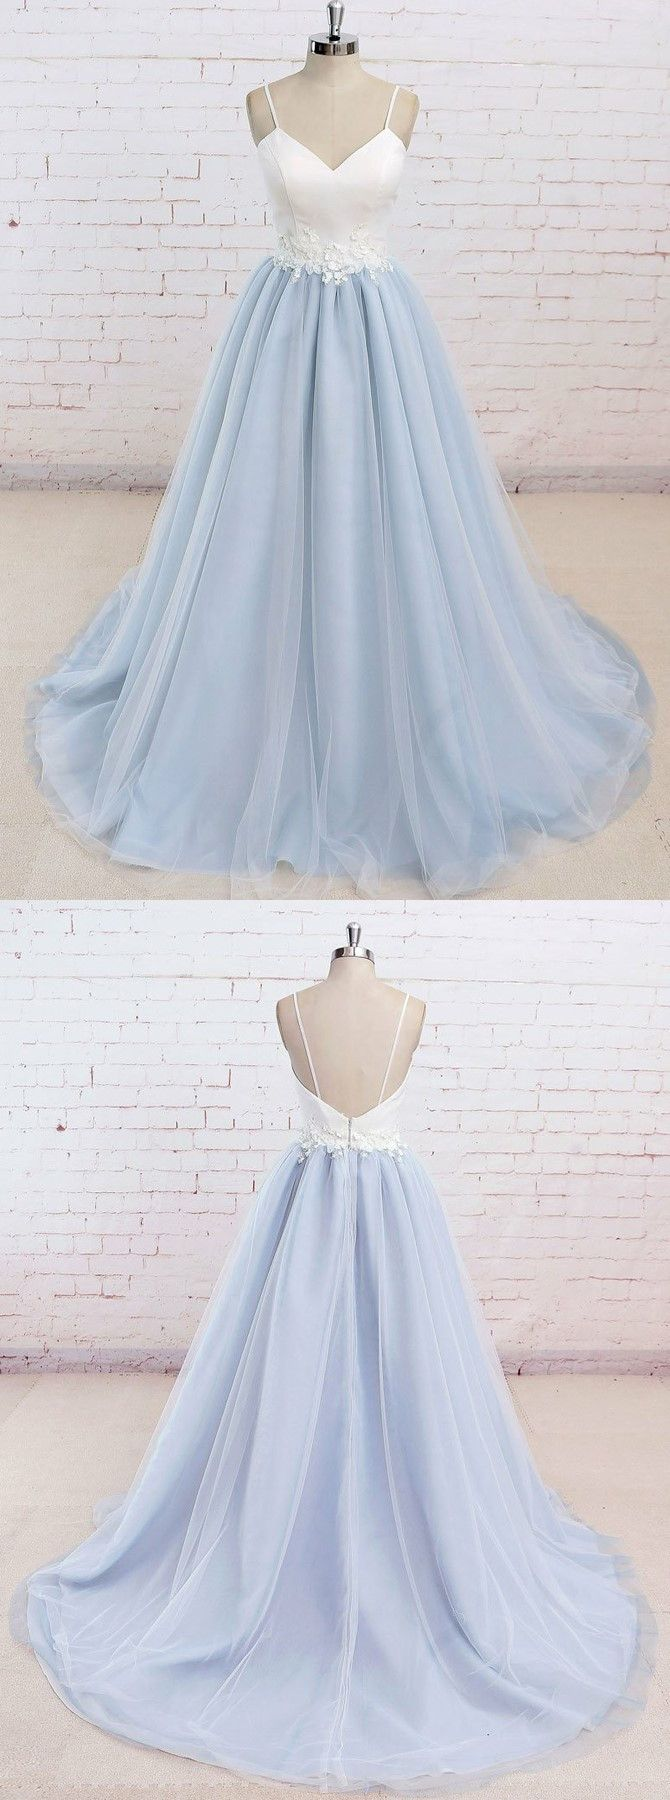 chic baby blue prom party dresses with train, fashion backless evening gowns, simple elegant gowns.